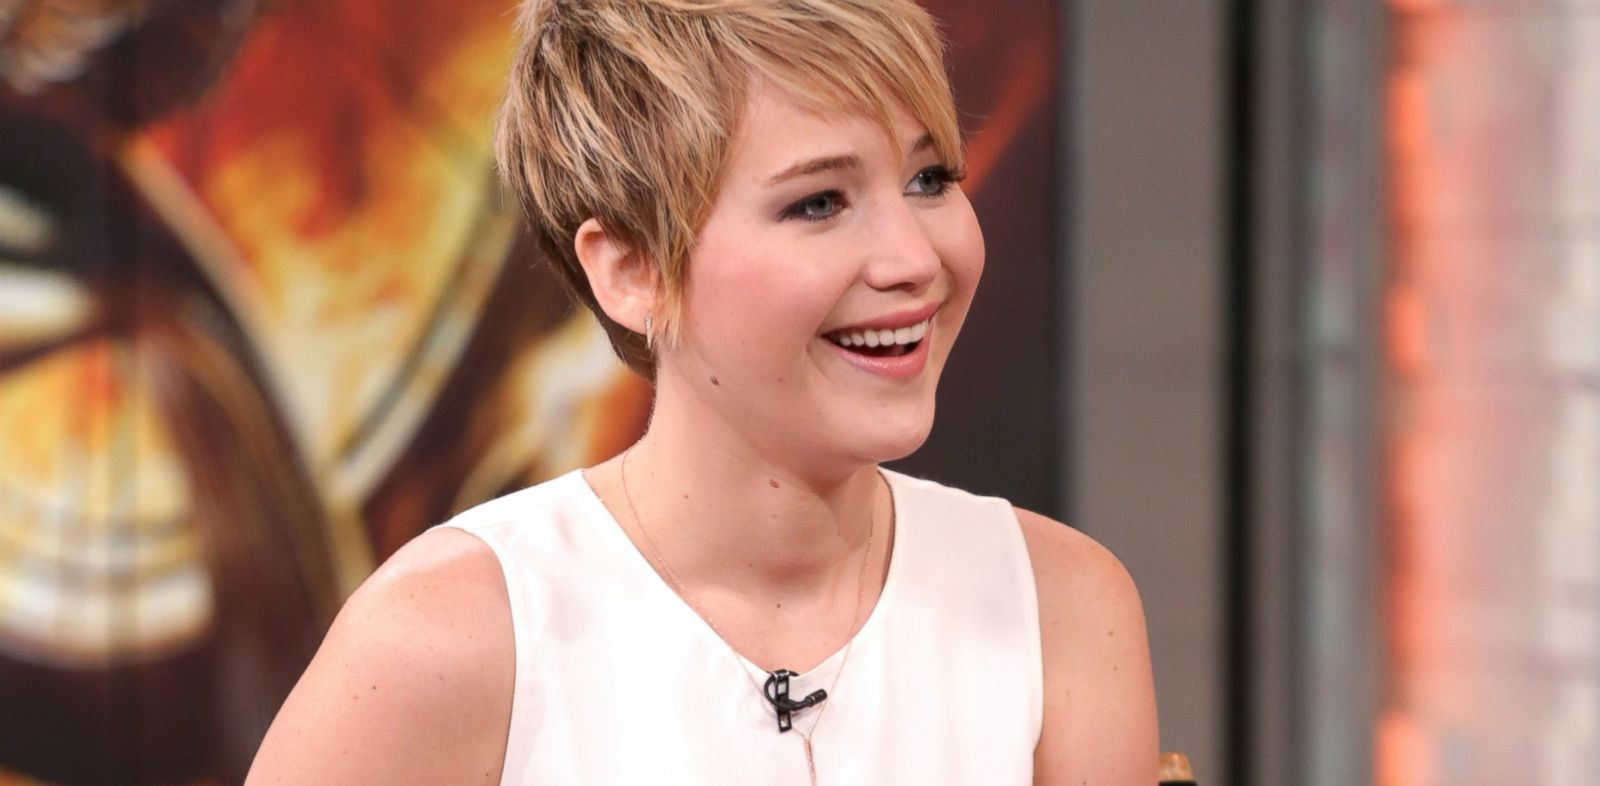 PHOTO: Jennifer Lawrence appears on Good Morning America, Nov. 21, 2013.